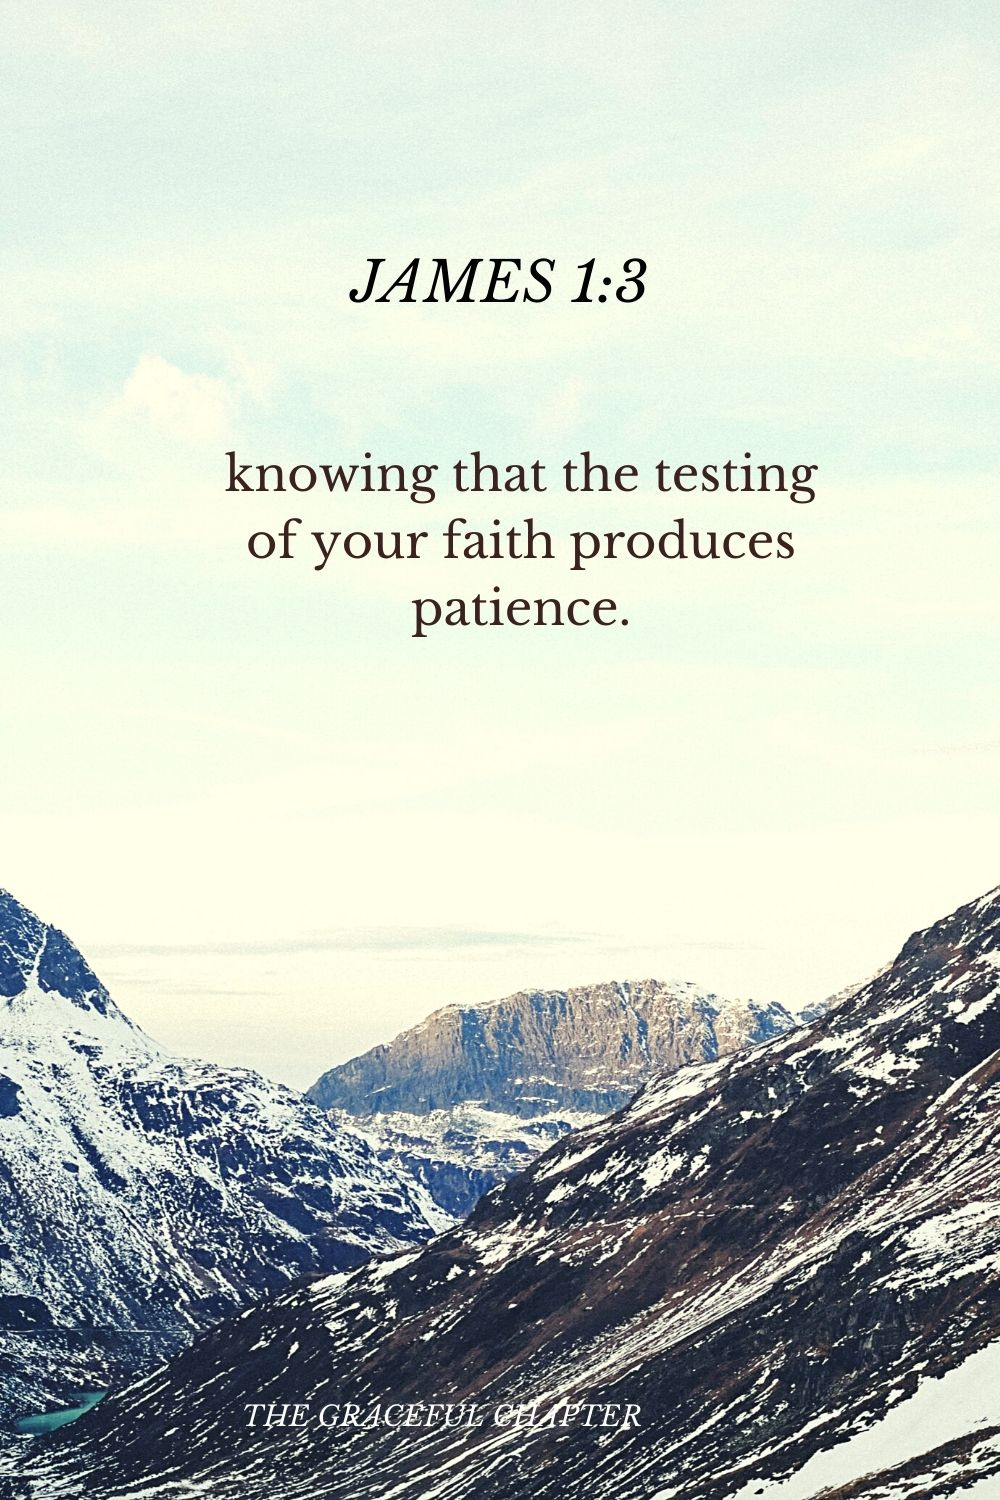 knowing that the testing of your faith produces patience. James 1:3